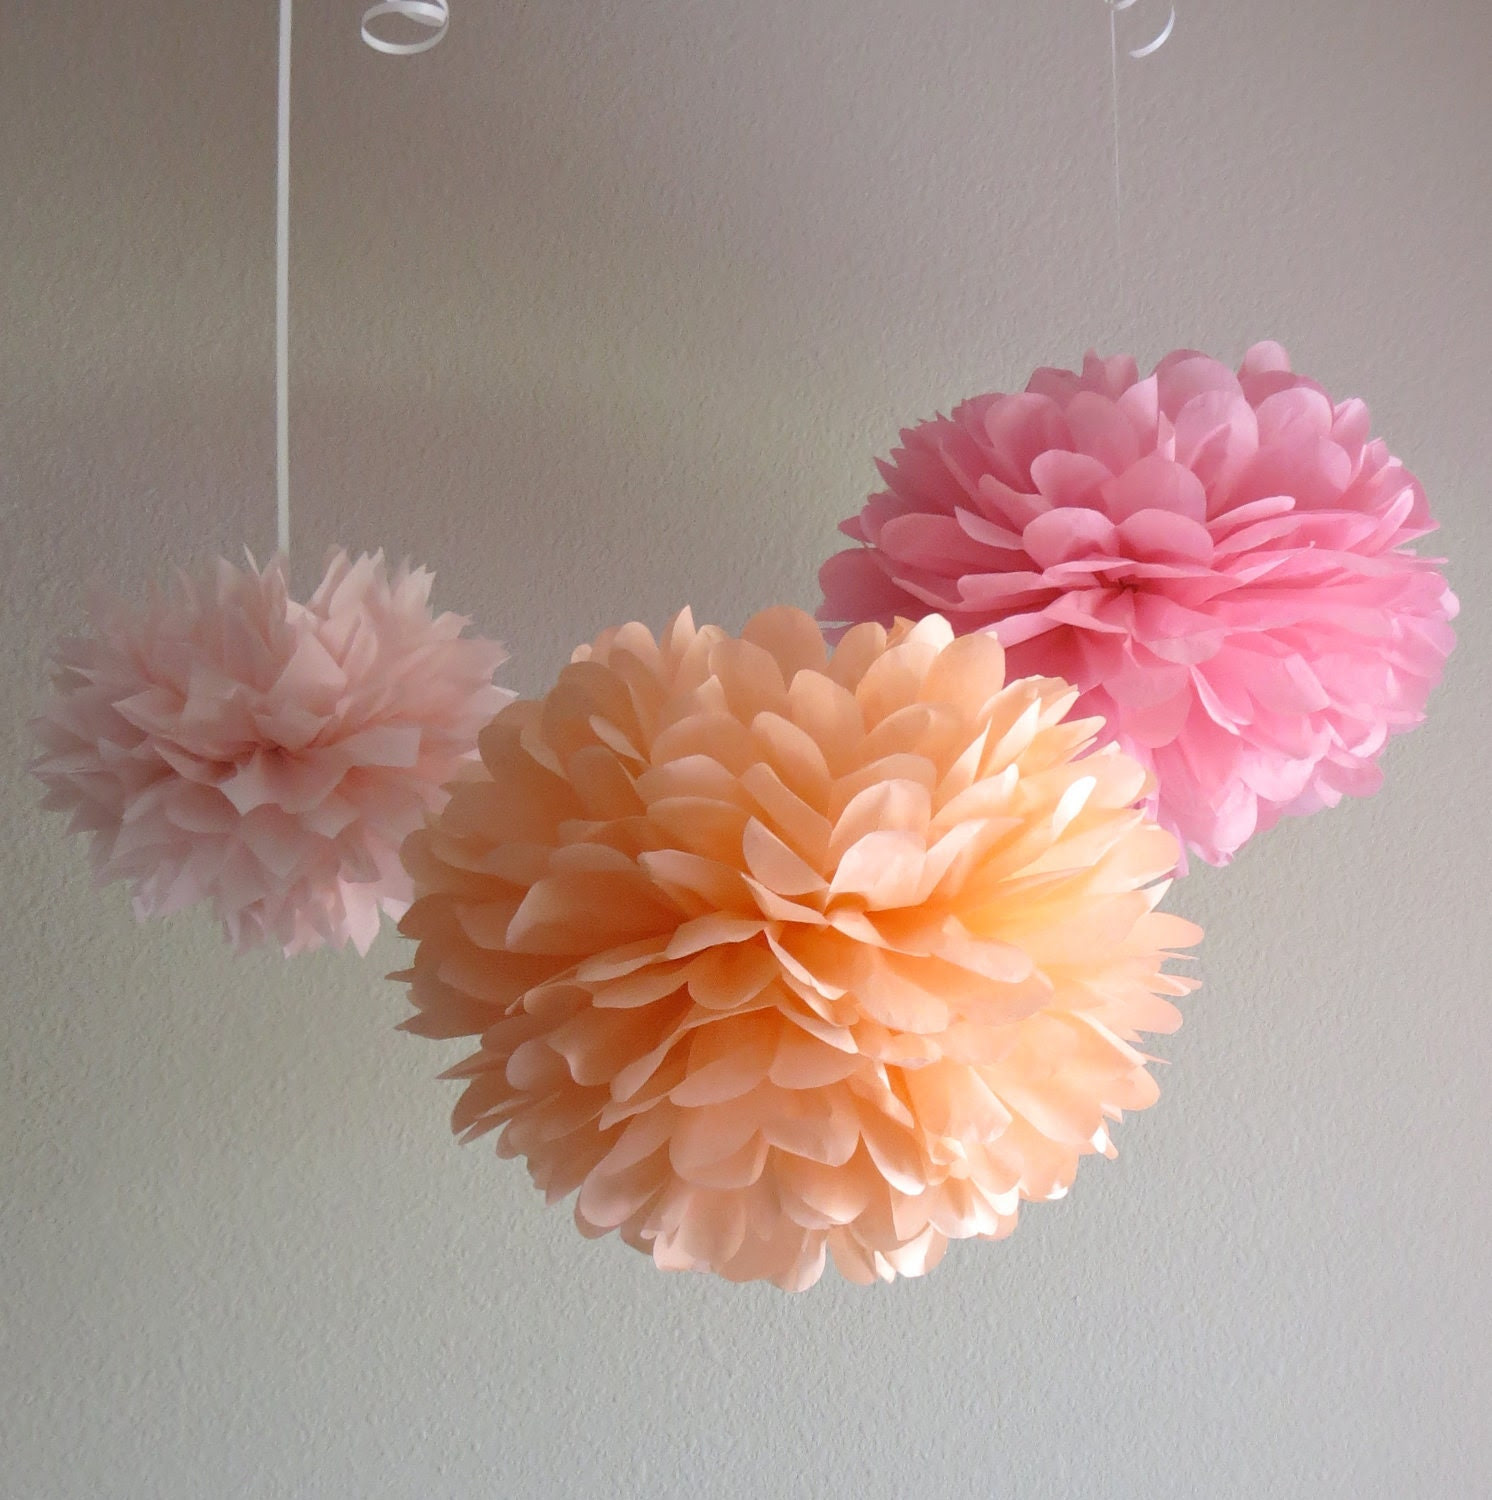 Peachy Pink Tissue Paper Pom Poms - 7 Piece Set - More Colors Available